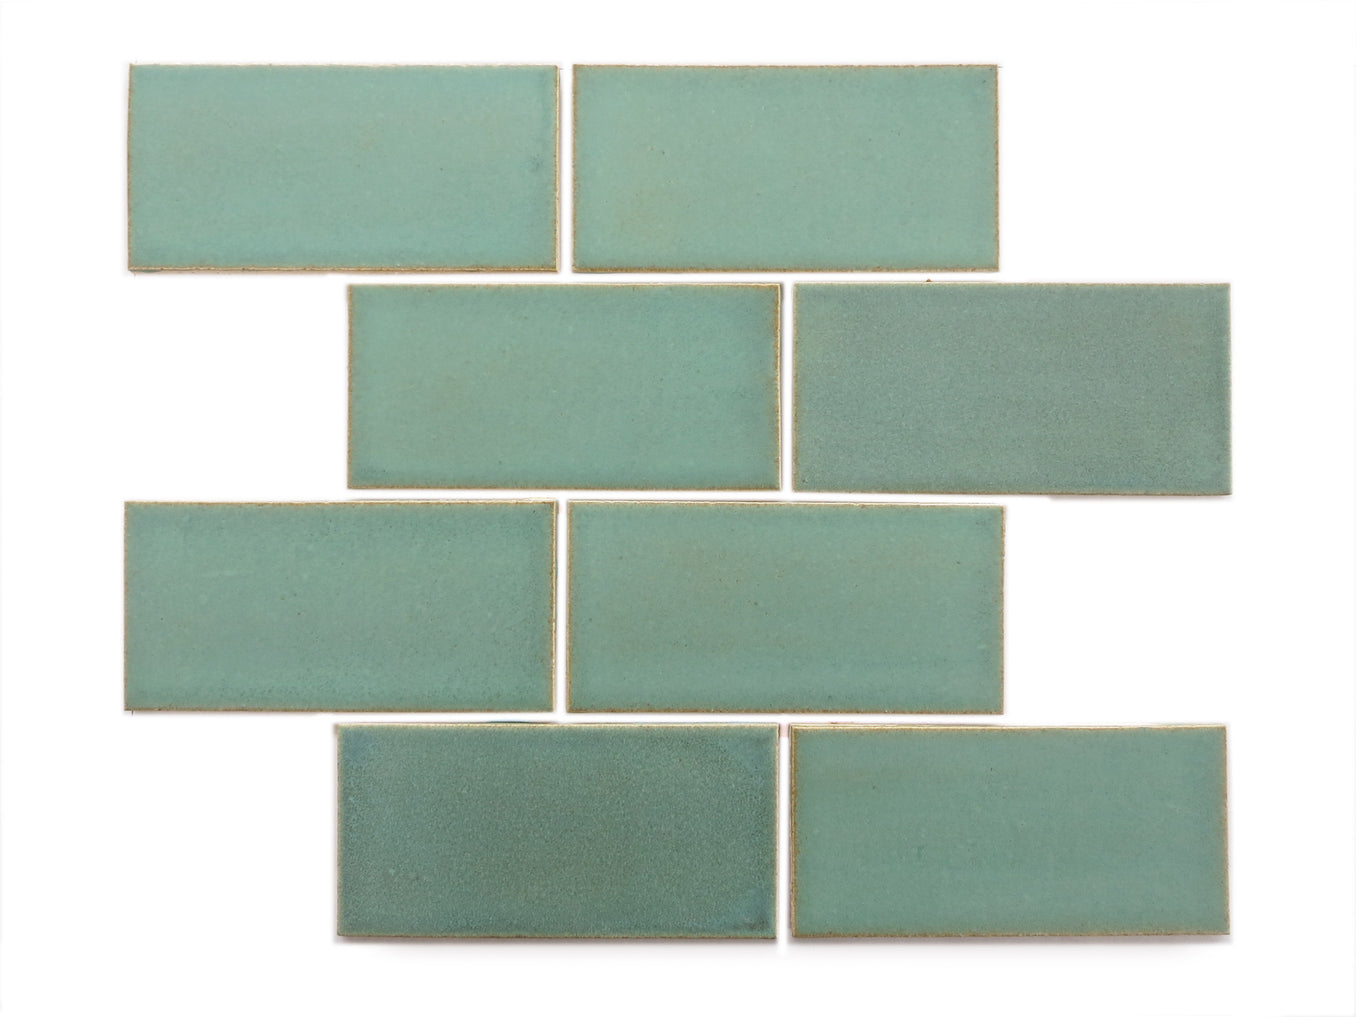 3x6 subway tile 913 old copper mercury mosaics 3x6 subway tile old copper share share on facebook email product pin on pinterest dailygadgetfo Image collections